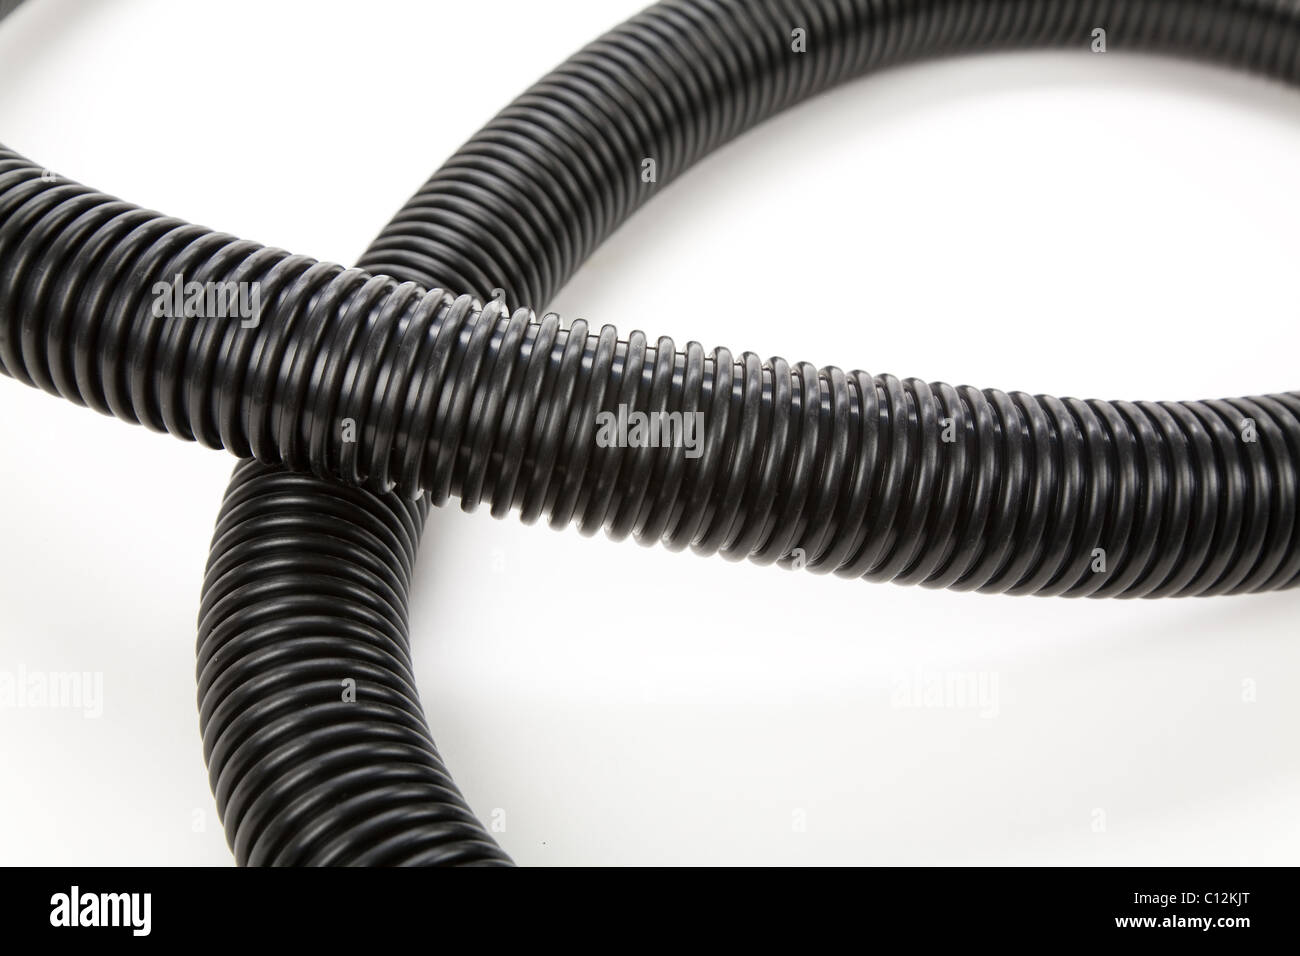 Corrugated Tube for Vacuum Cleaner - Stock Image